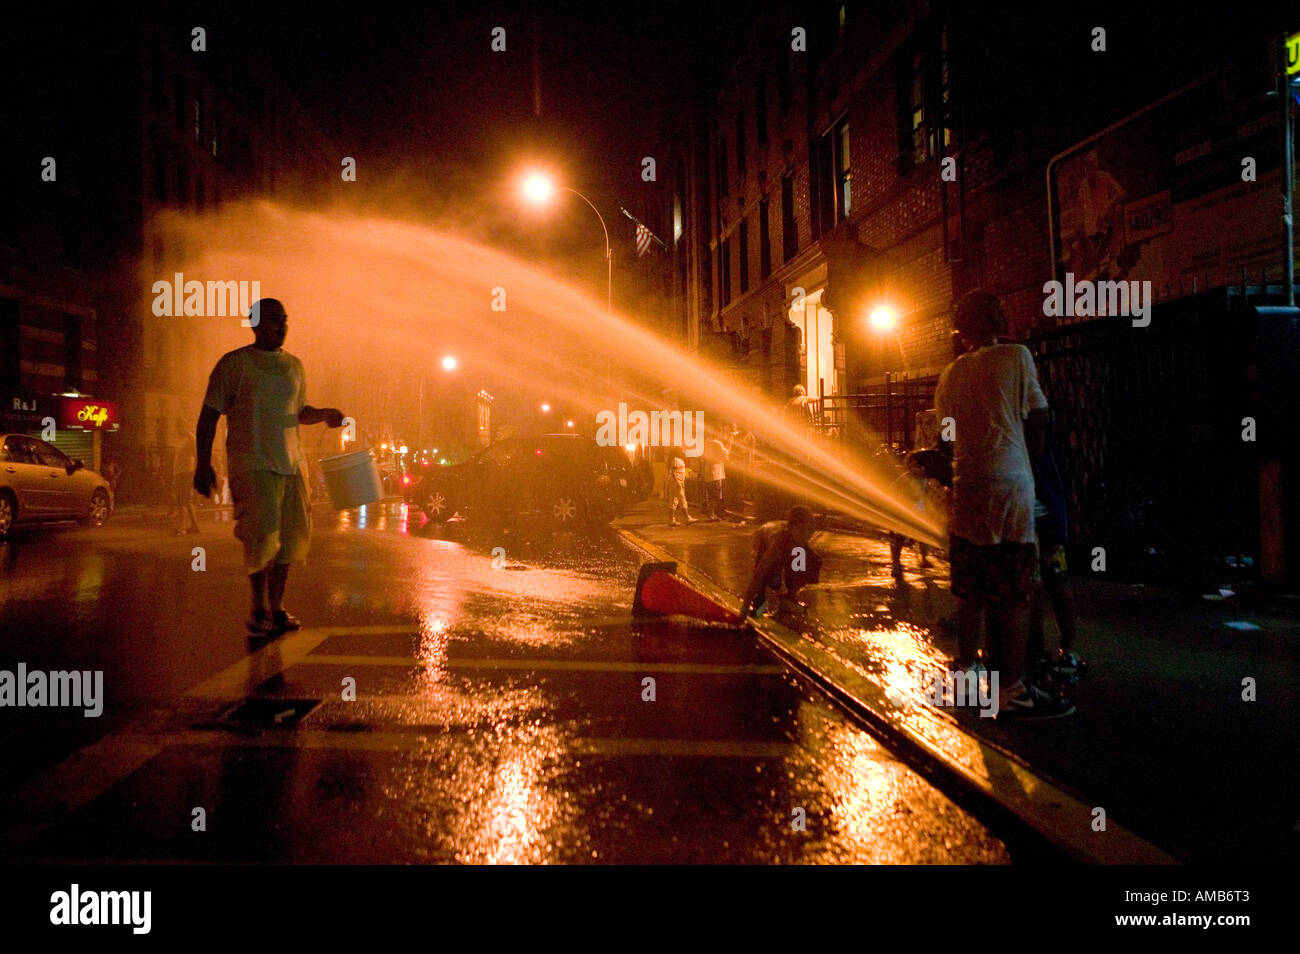 Playing in the fire hydrant spray in Harlem New York City USA August 2005 - Stock Image